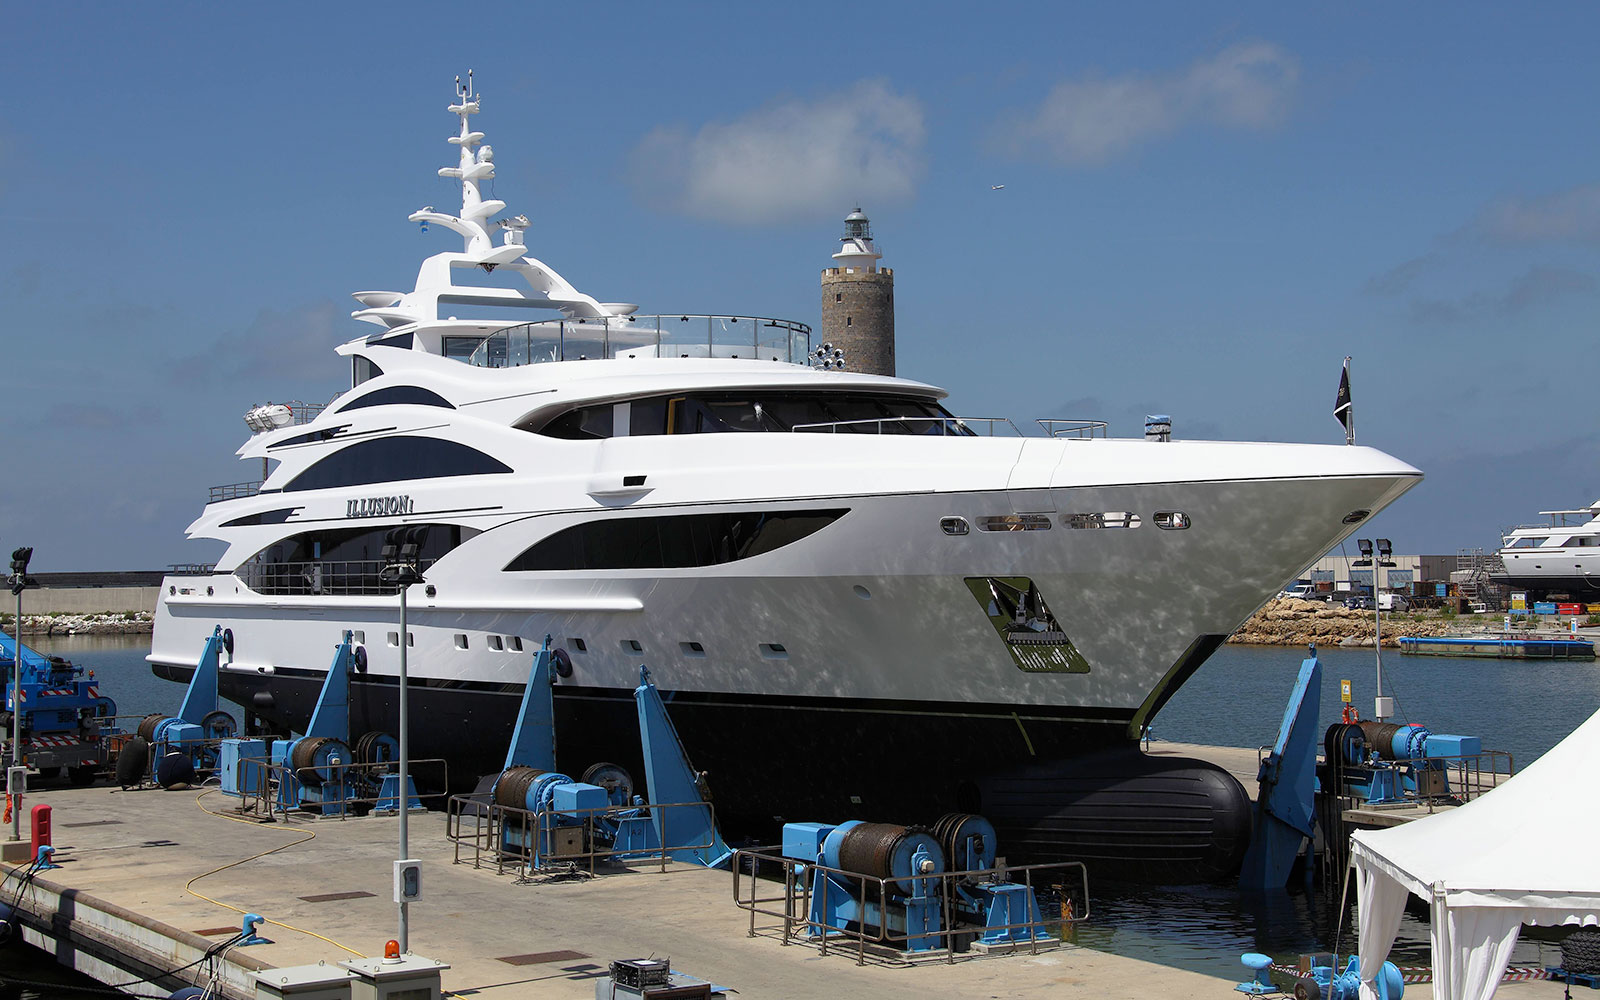 Benetti Illusion I